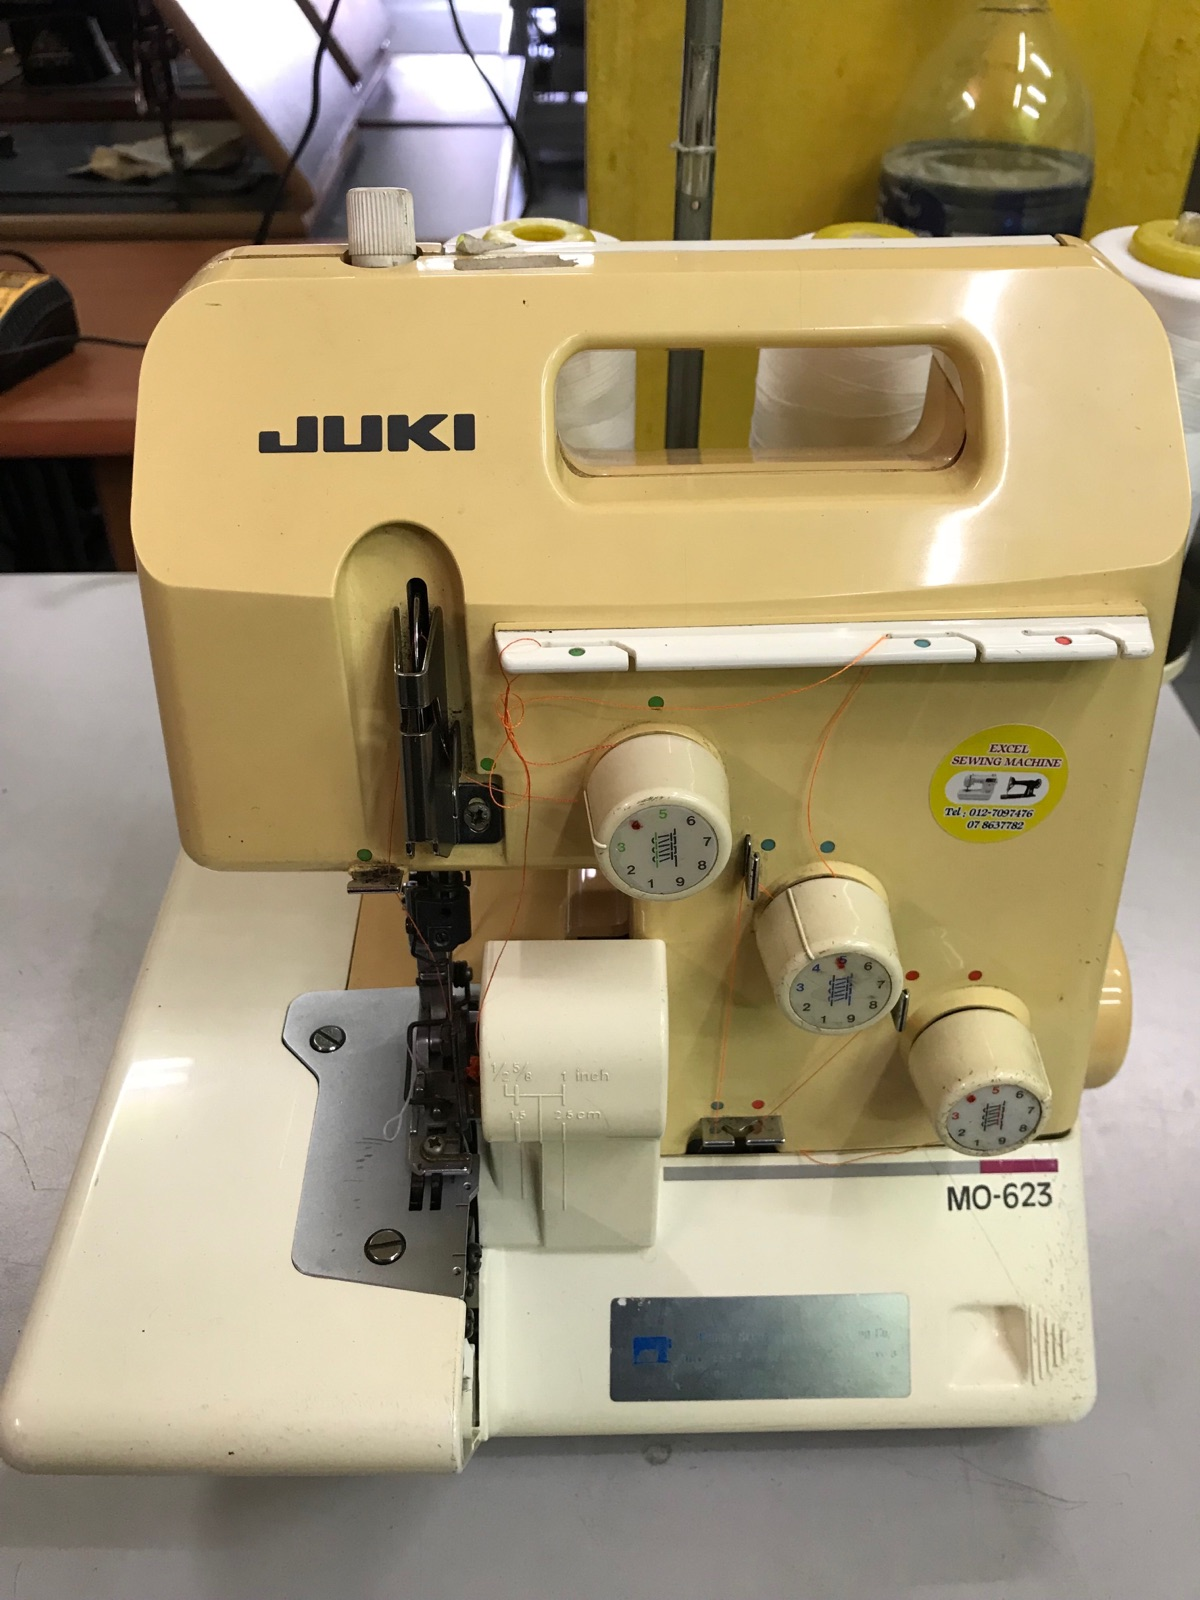 Repair Juki Portable Overlock Sewing Machine